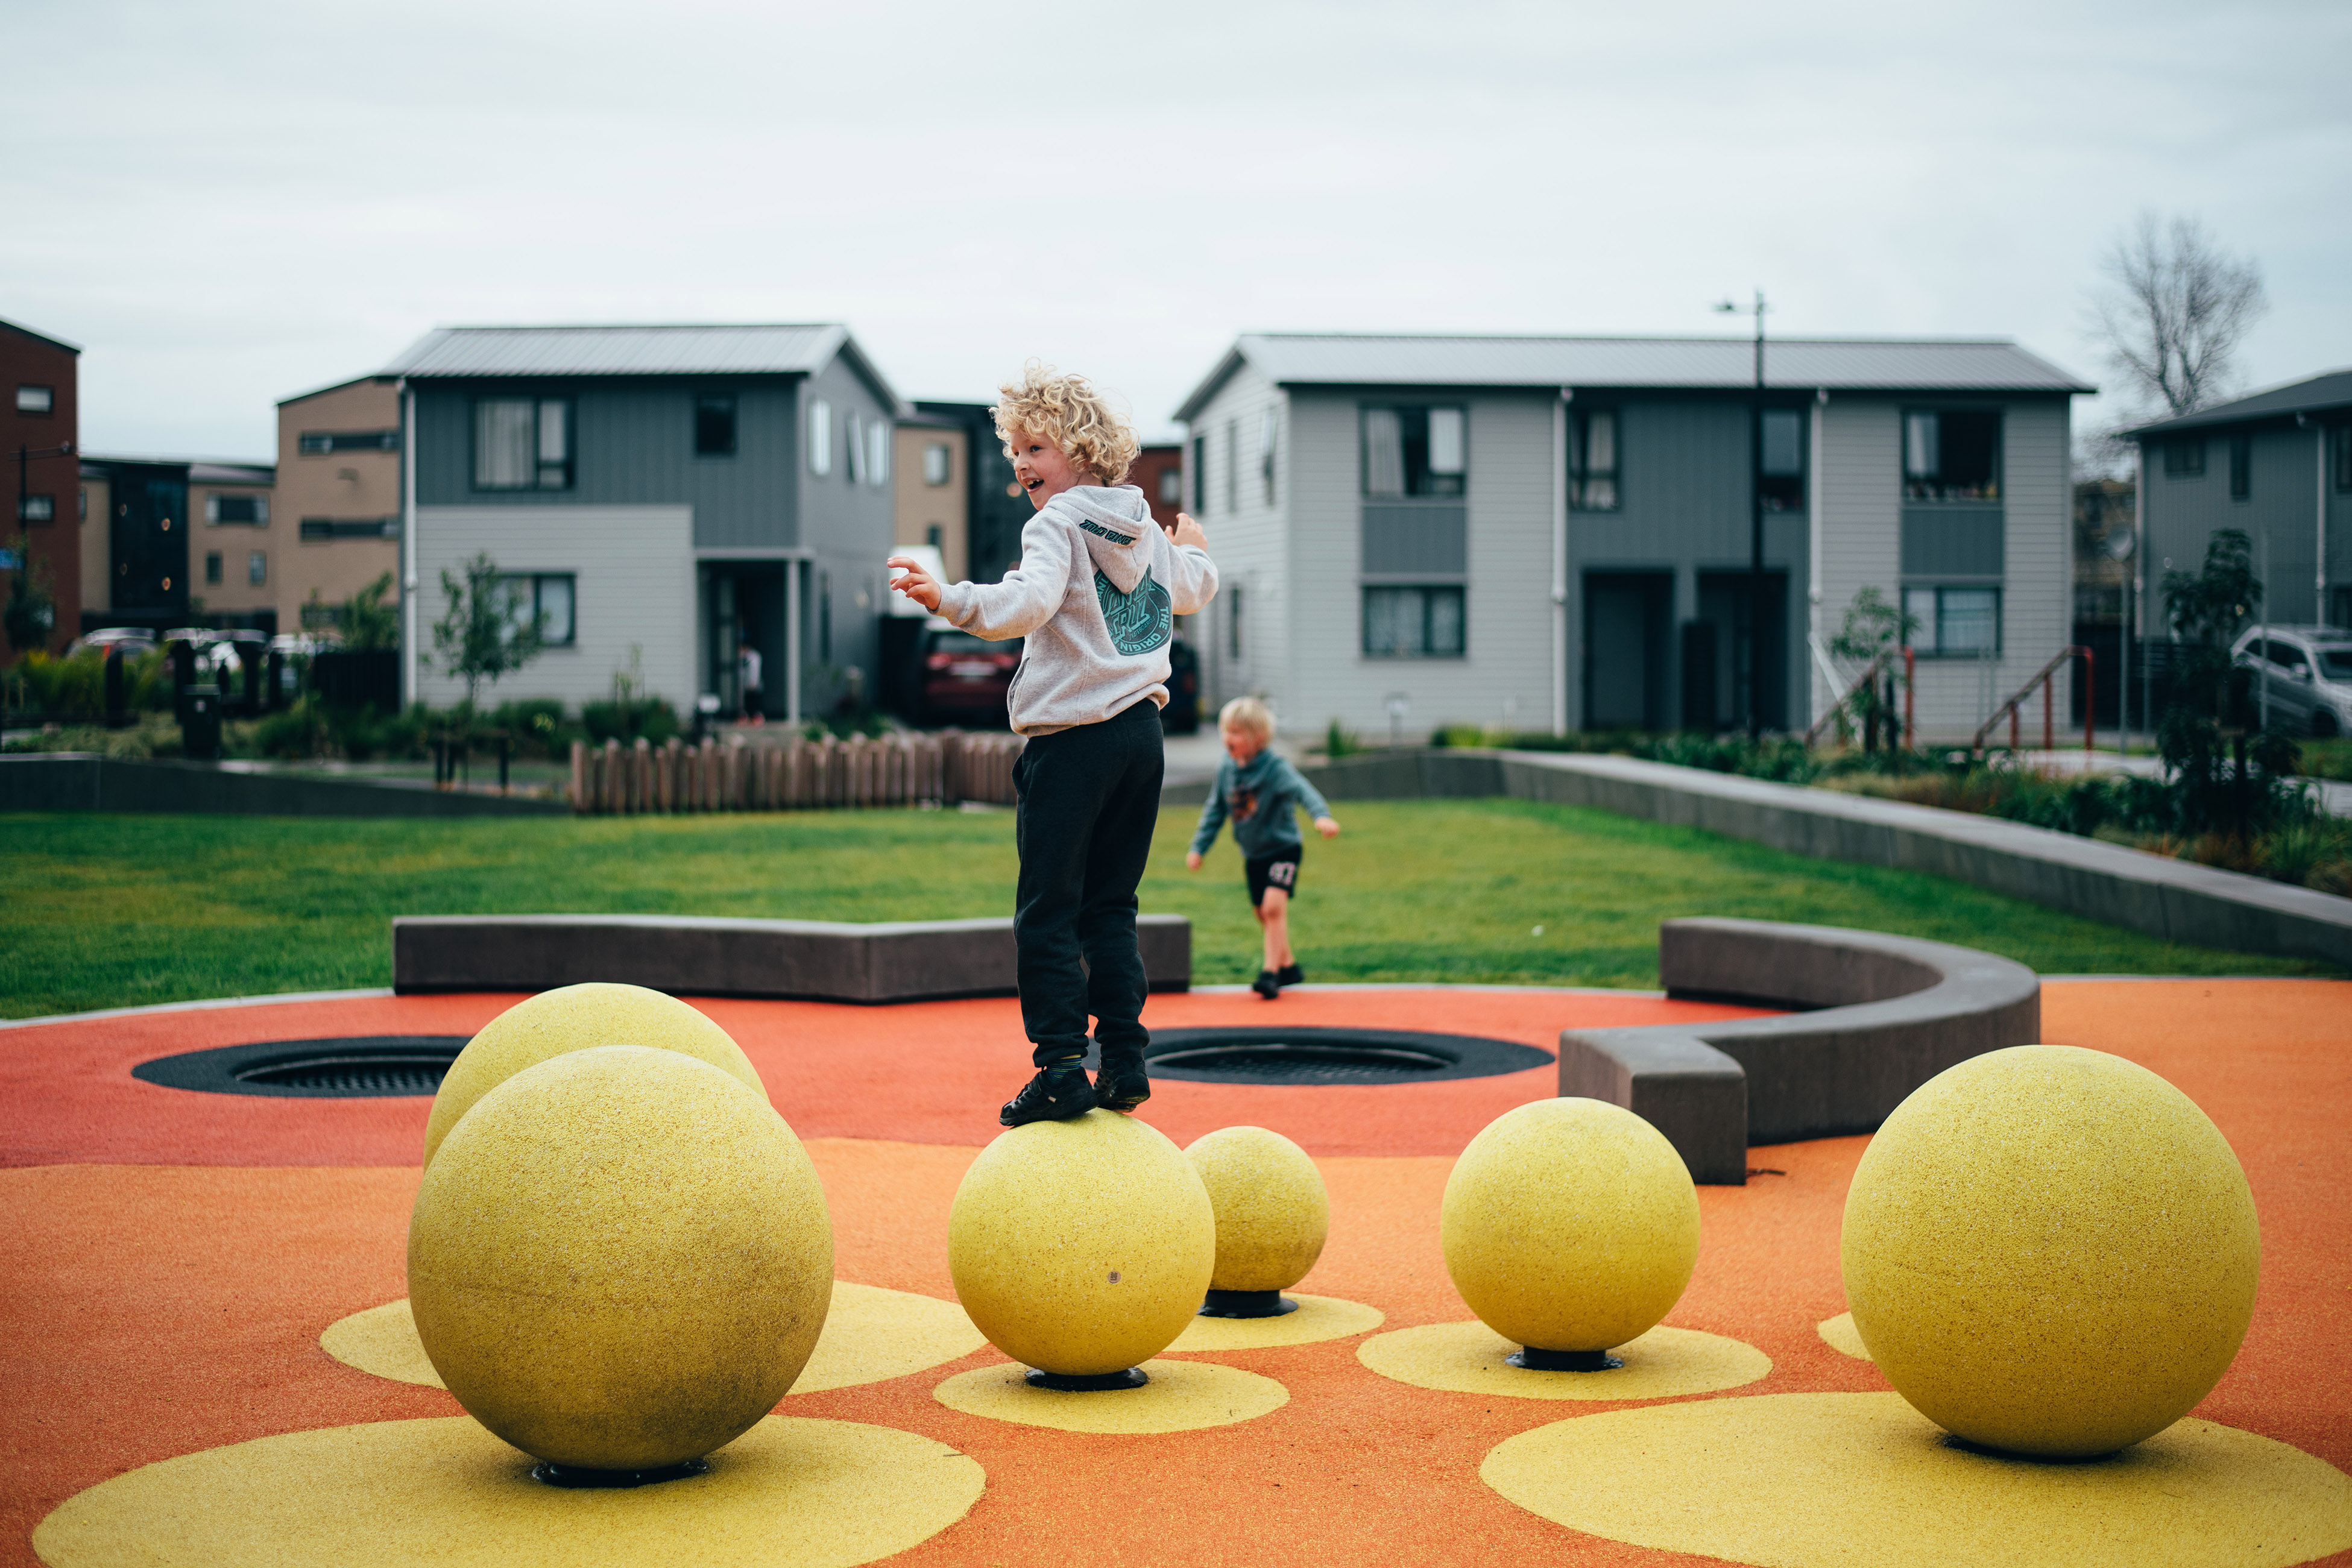 Future neighbourhoods: Sustainability as wellbeing in a new generation of suburb